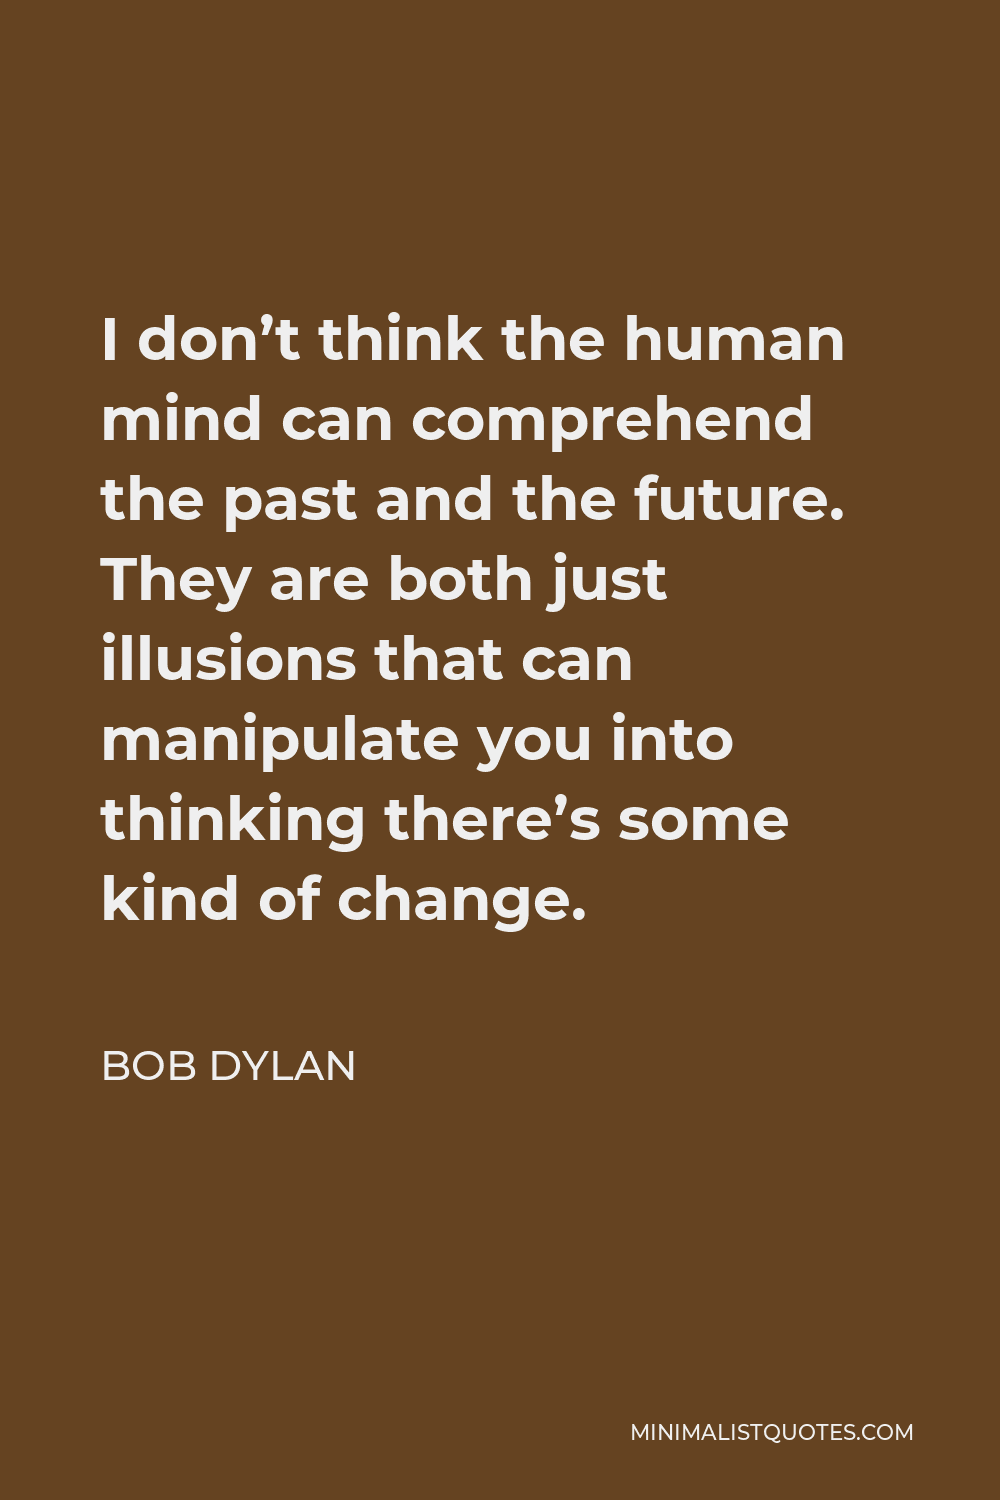 Bob Dylan Quote - I don't think the human mind can comprehend the past and the future. They are both just illusions that can manipulate you into thinking there's some kind of change.